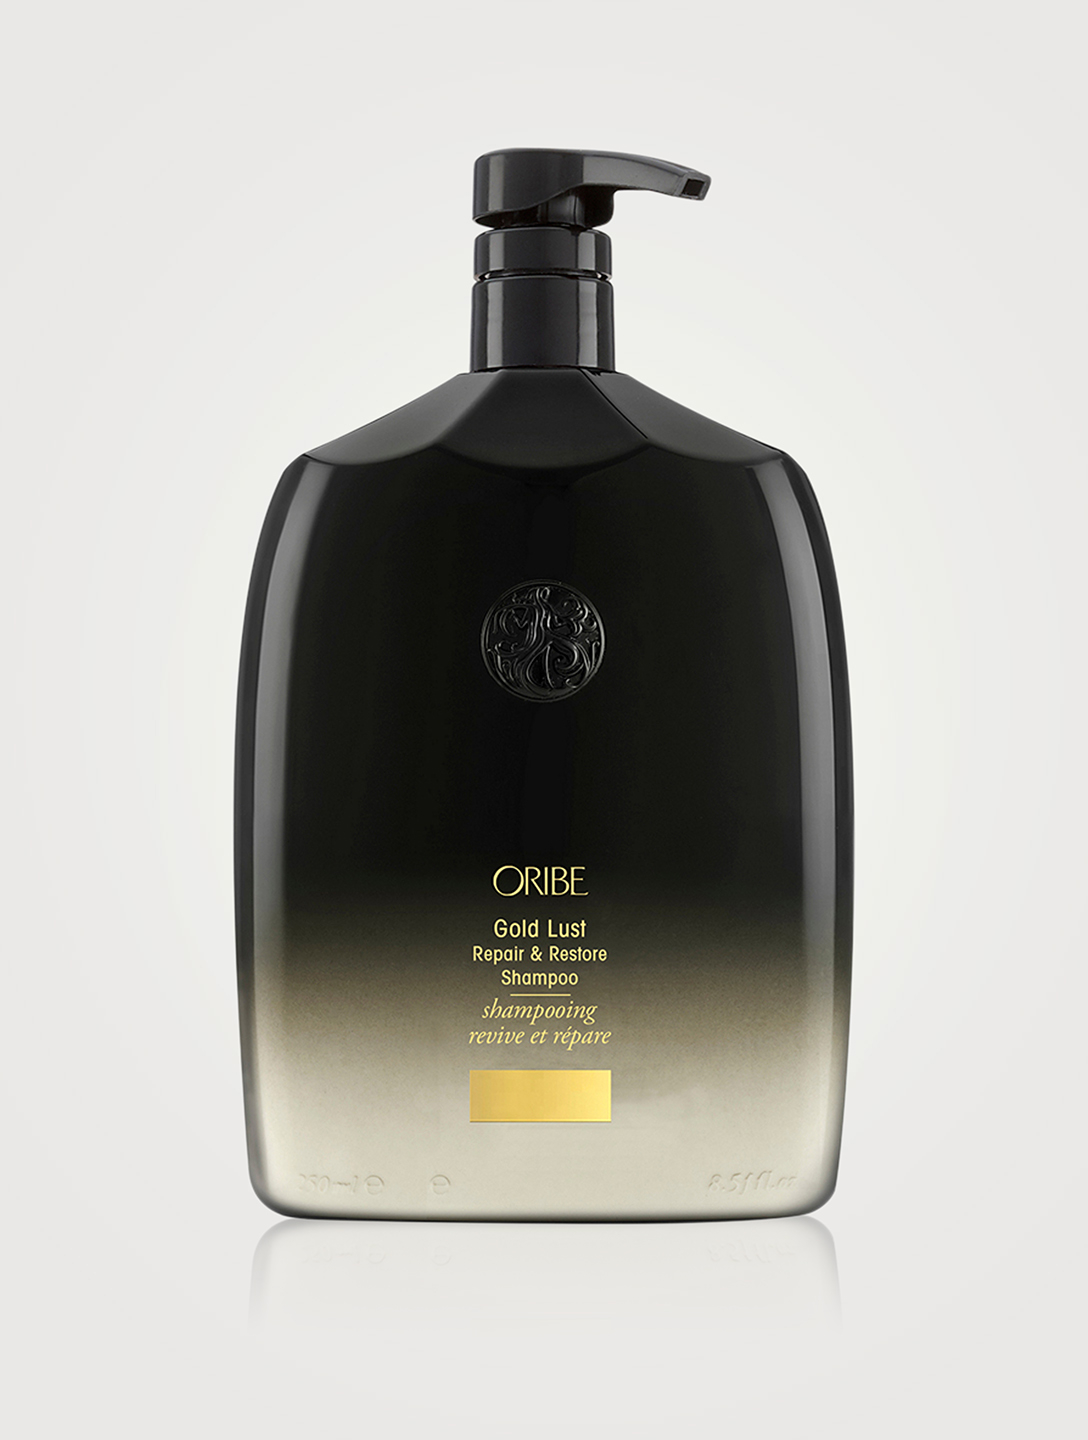 ORIBE Gold Lust Repair & Restore Shampoo Beauty